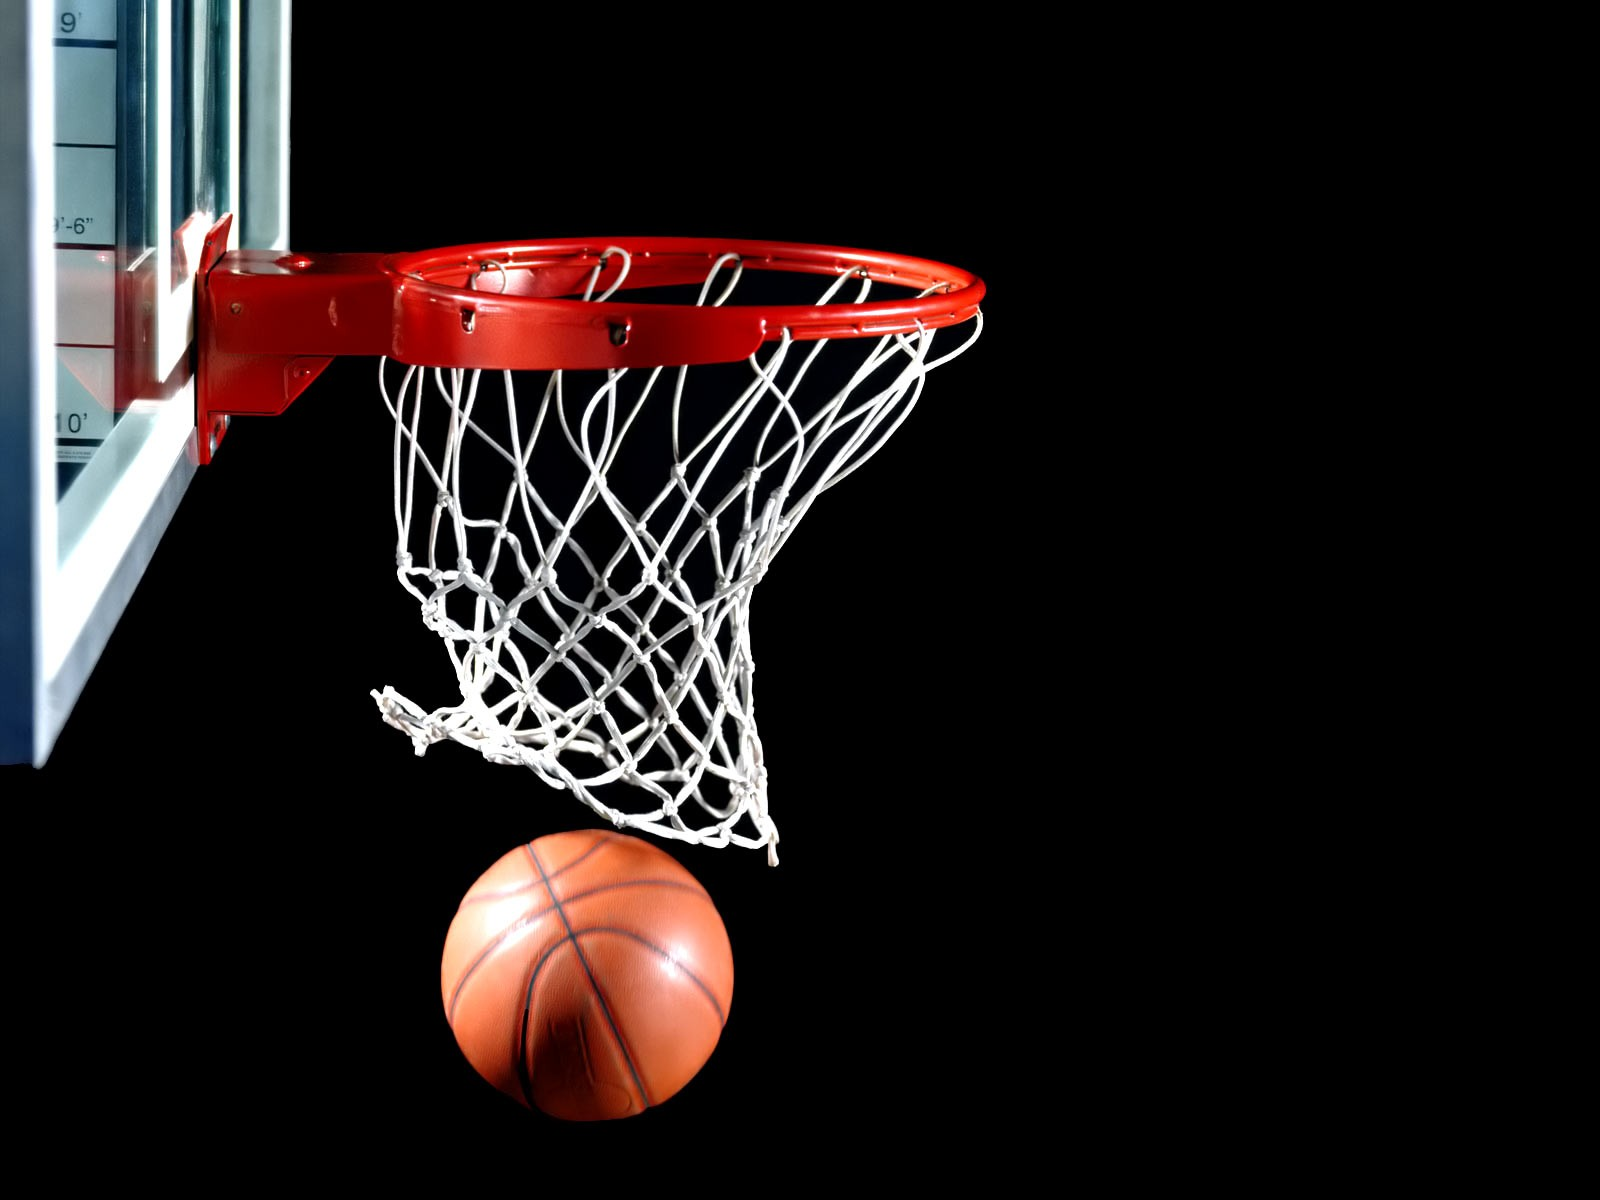 Awesome Basketball HD Desktop Wallpapers HD Wallpapers Backgrounds 1600x1200